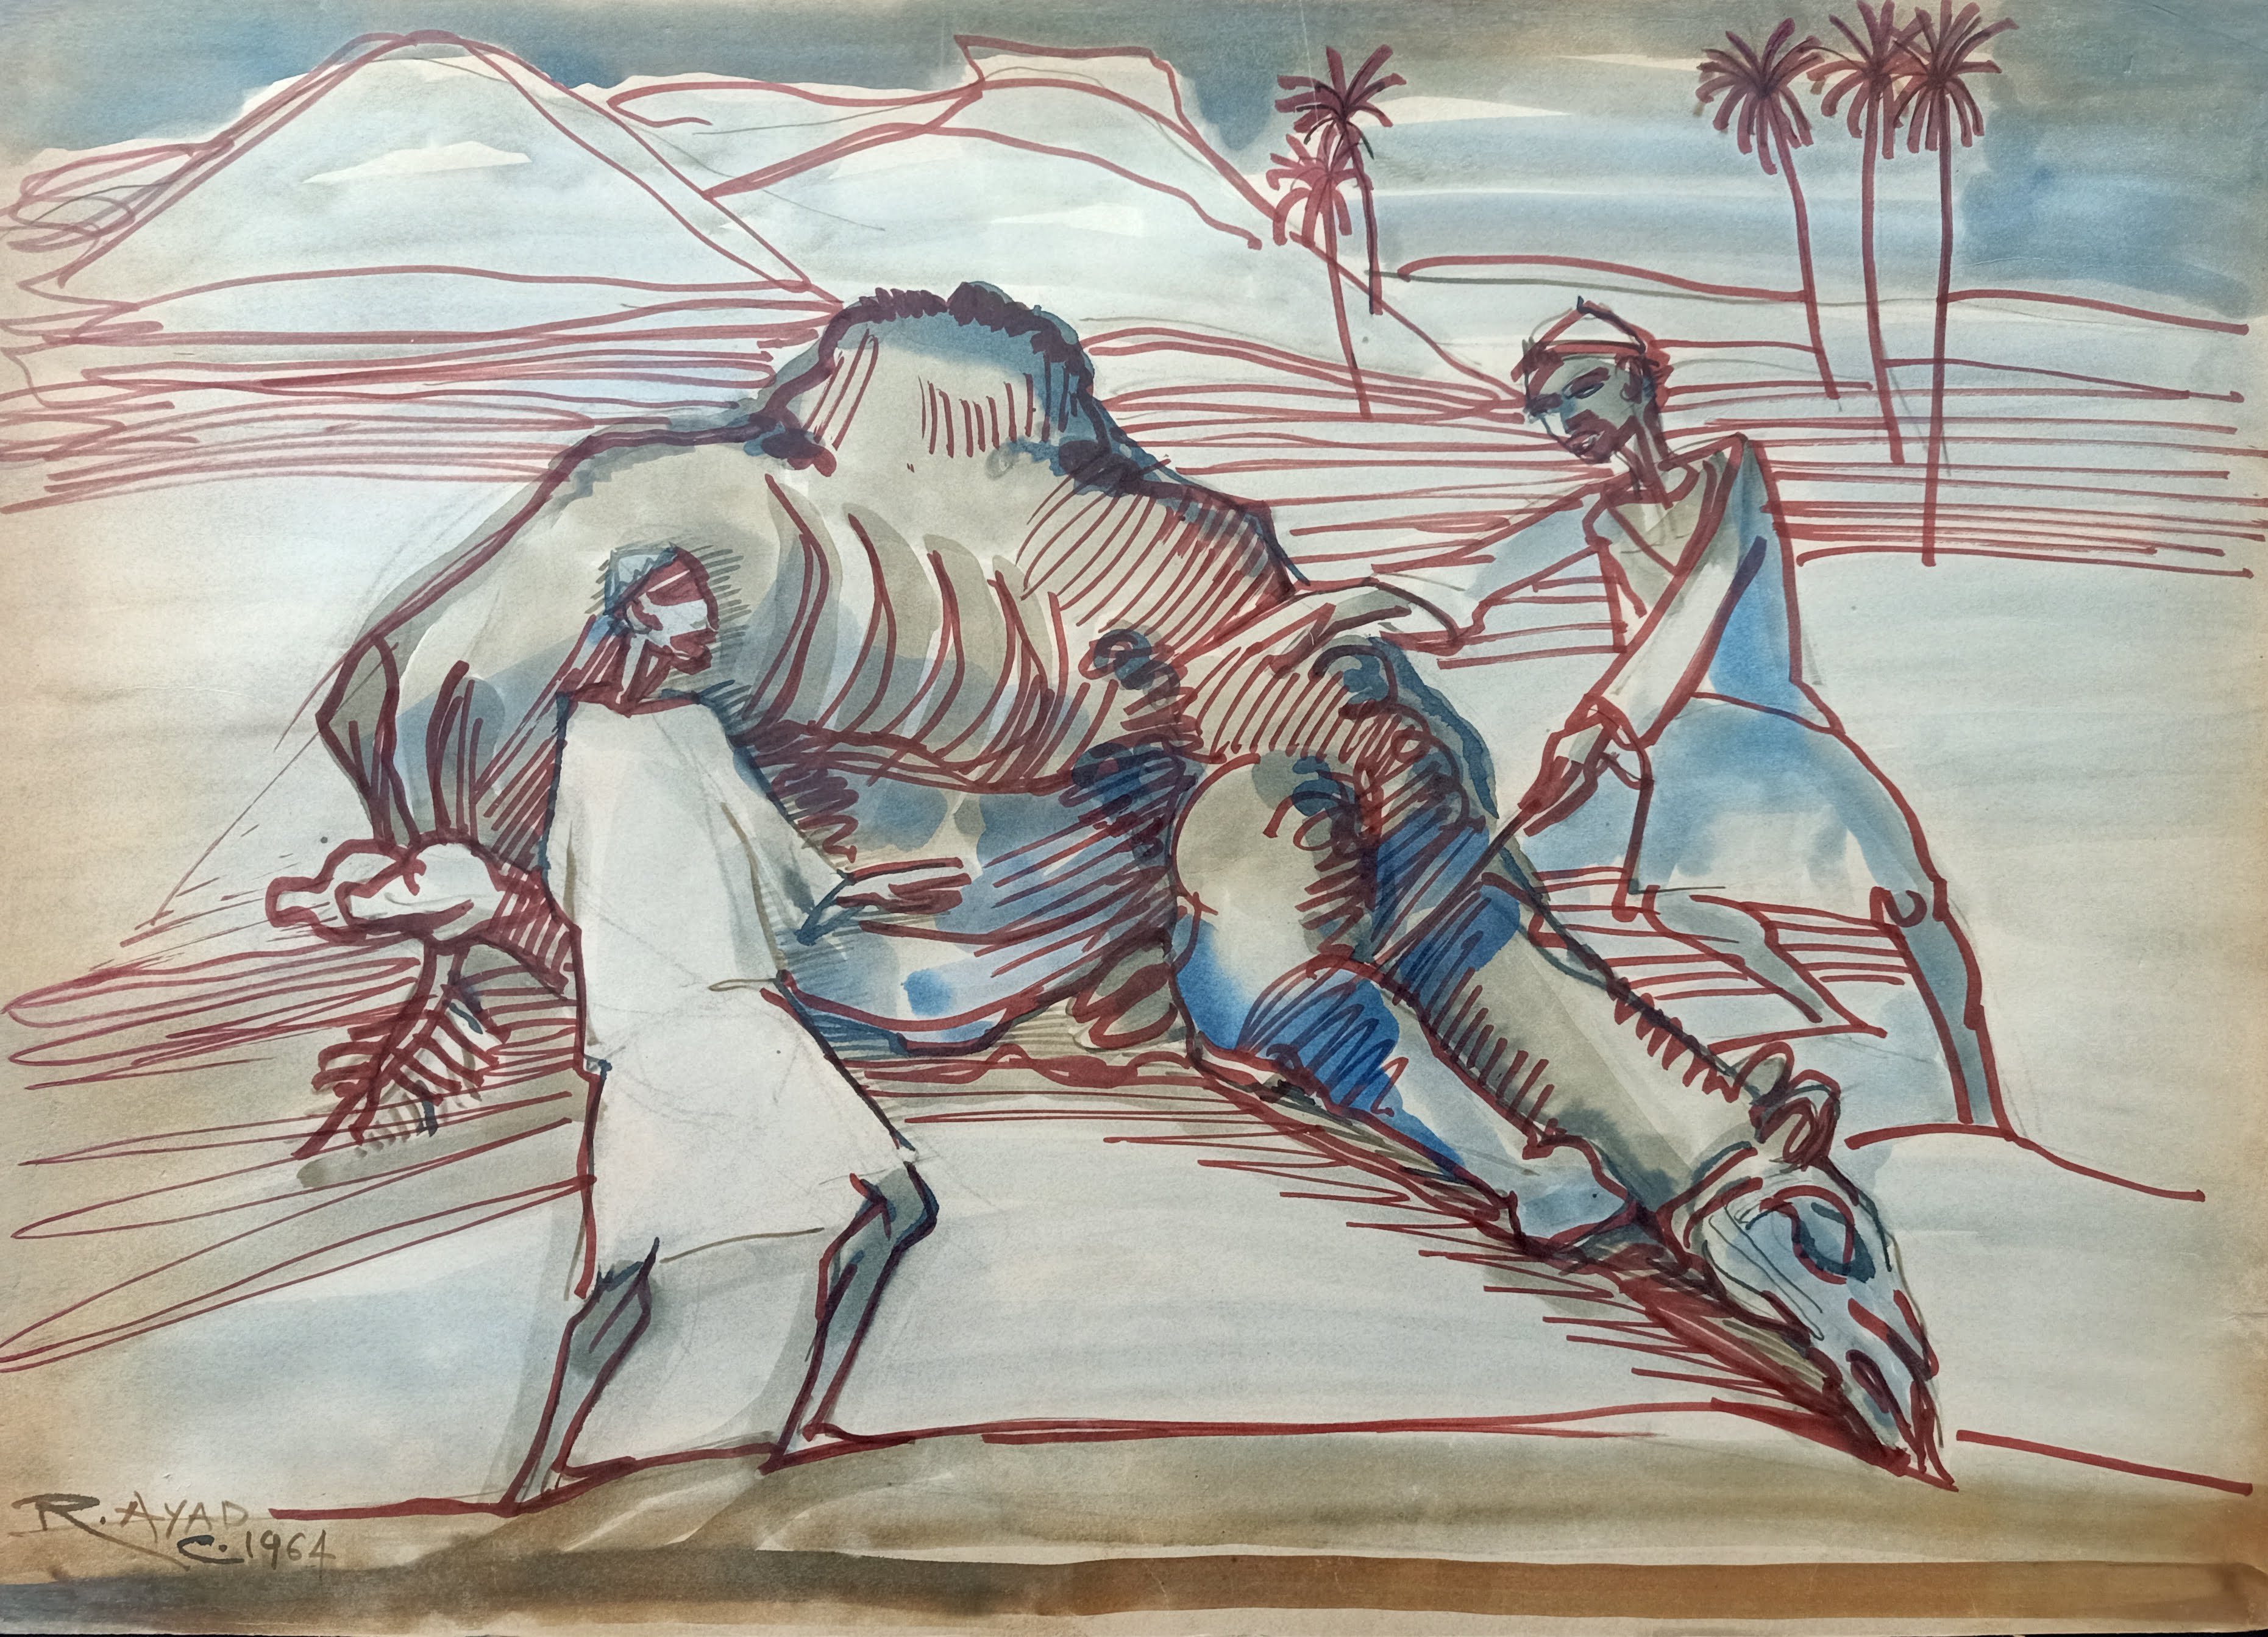 Ragheb Ayad, Camel Riders, 1964. Mixed media on paper 50×70 cm Signed and dated bottom right